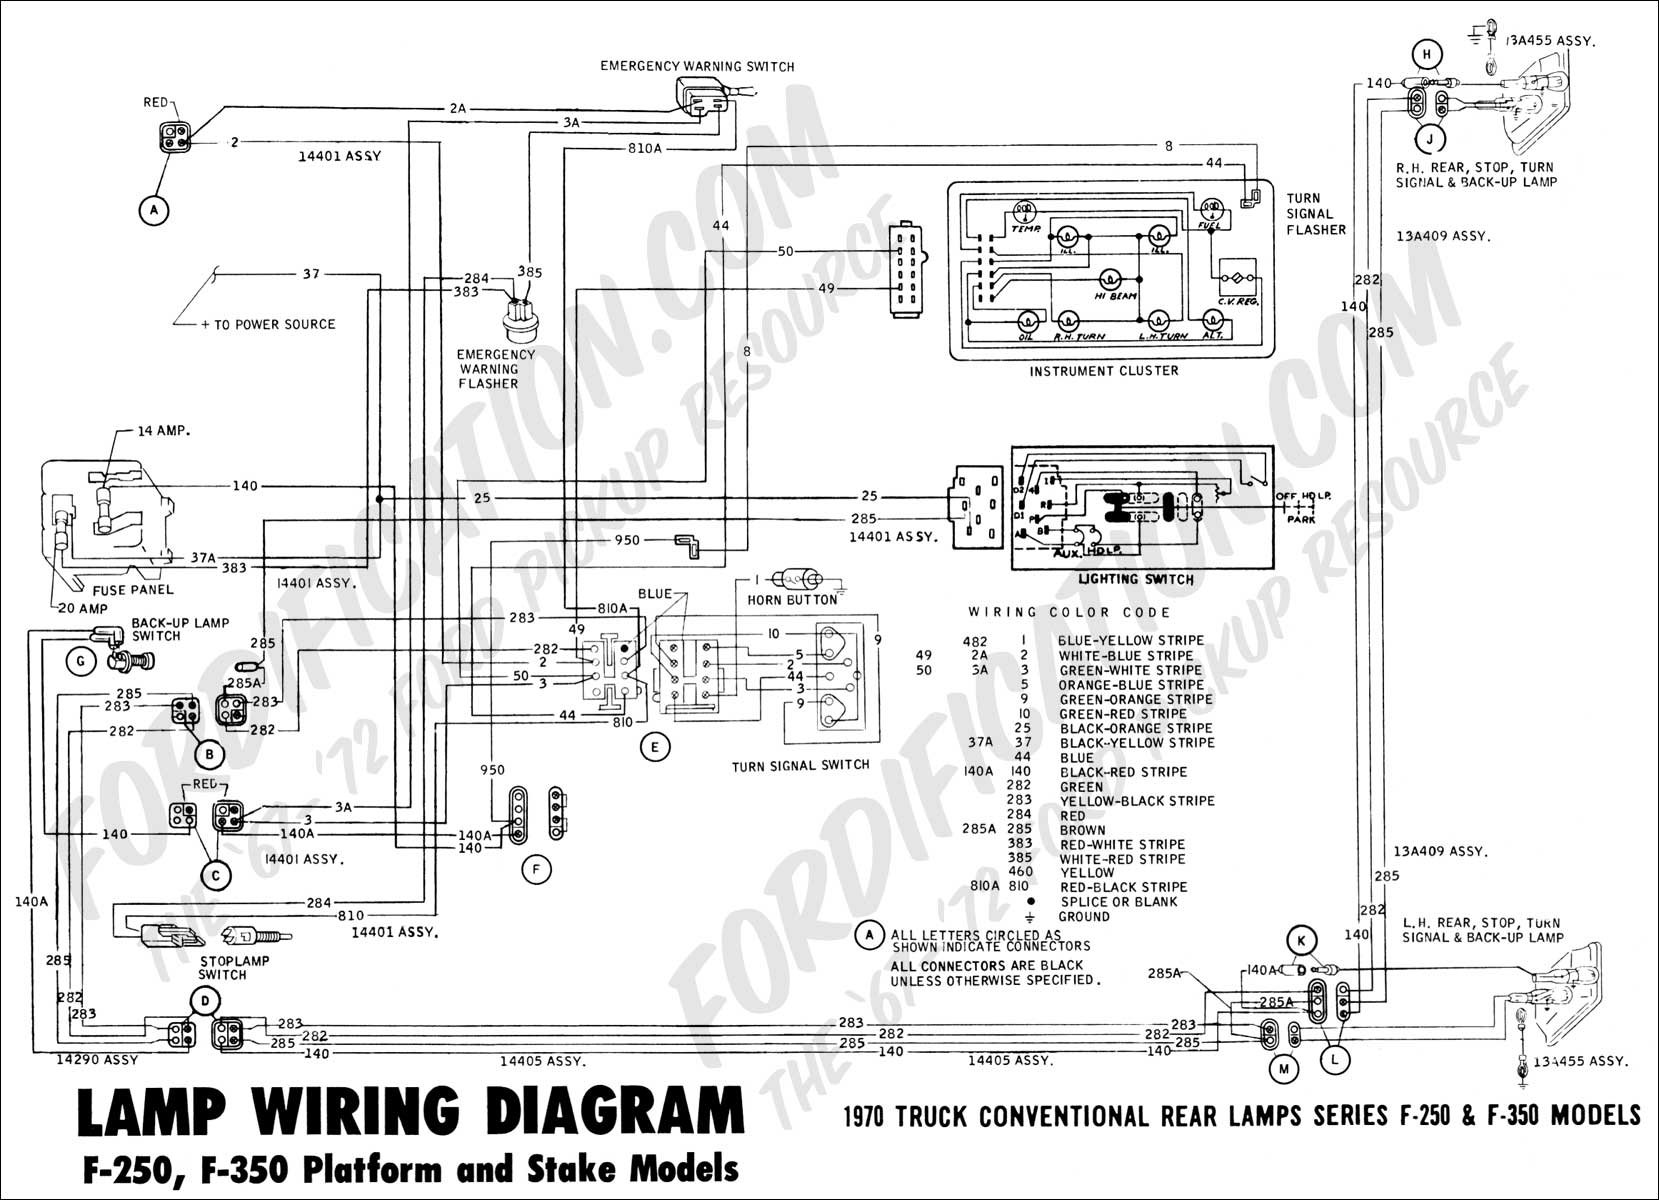 2000 Cadillac Escalade ke Light Wiring Diagram | Wiring Diagram on 1989 cadillac deville radio schematic, cadillac electrical schematic, cts-v clutch schematic,